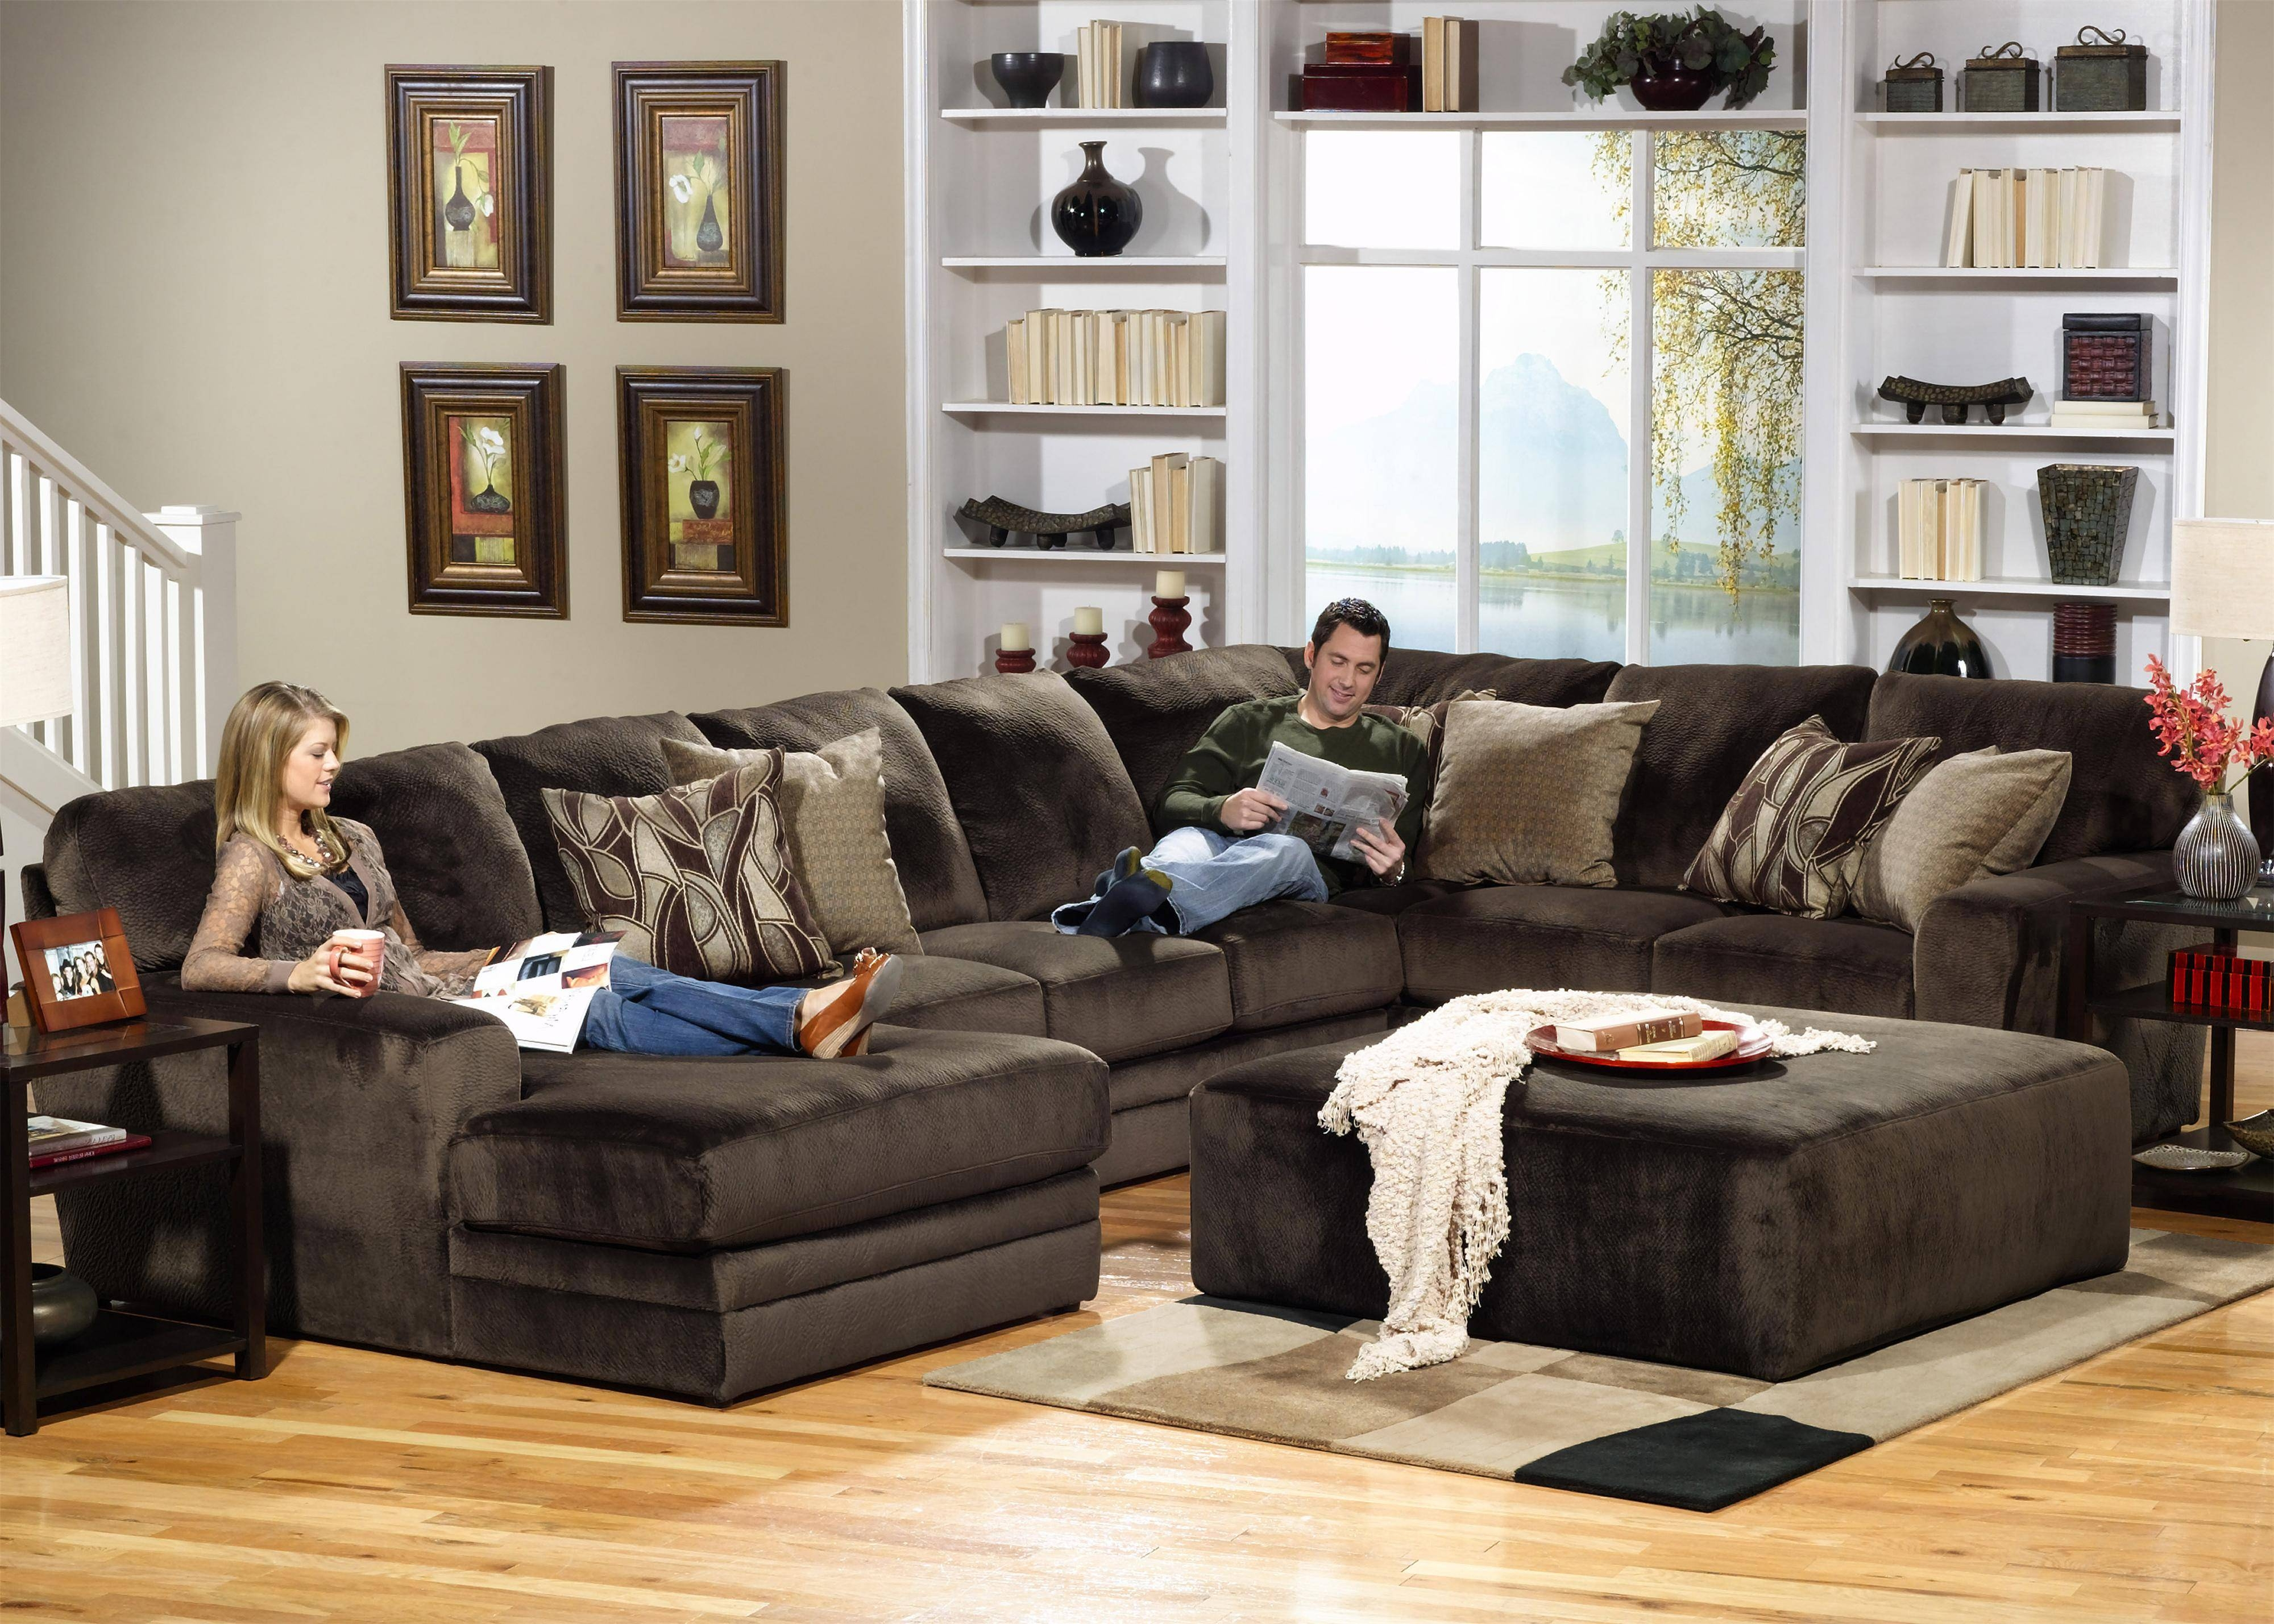 Jackson Furniture 4377 Everest 3 Piece Sectional With Rsf Section inside 10 Piece Sectional Sofa (Image 16 of 30)